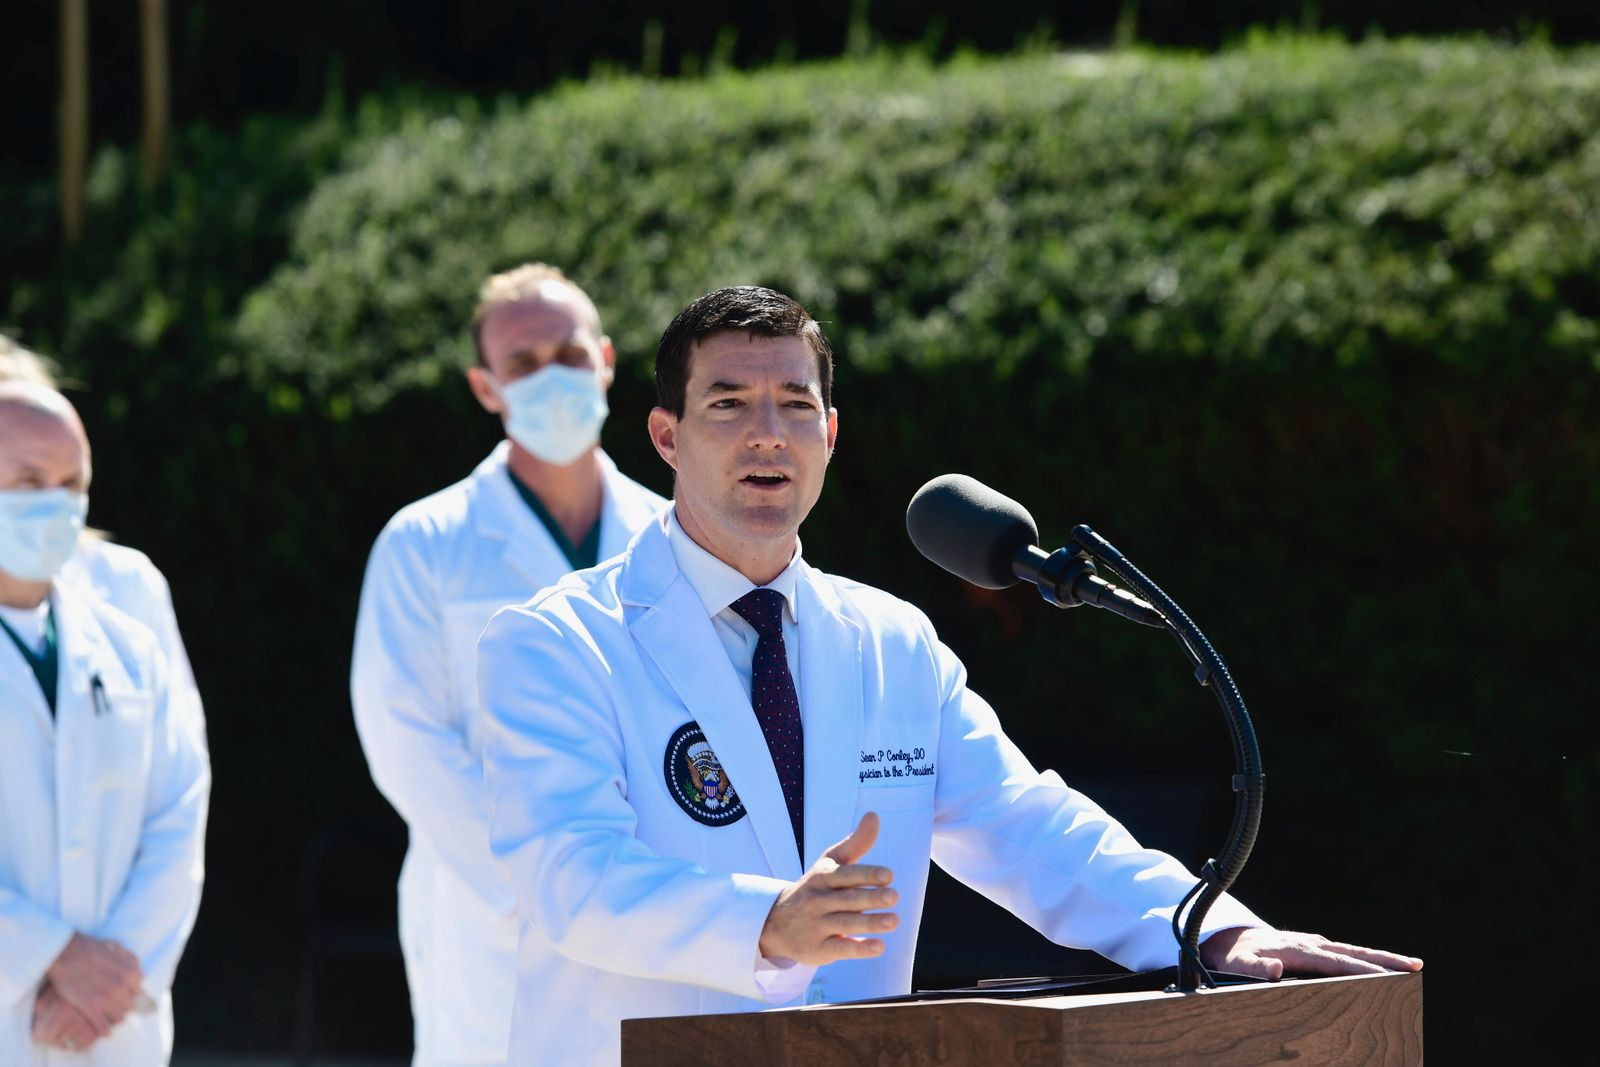 CDR Sean P. Conley, MD, Physician to the President, provided an update on the condition of United States President Donal